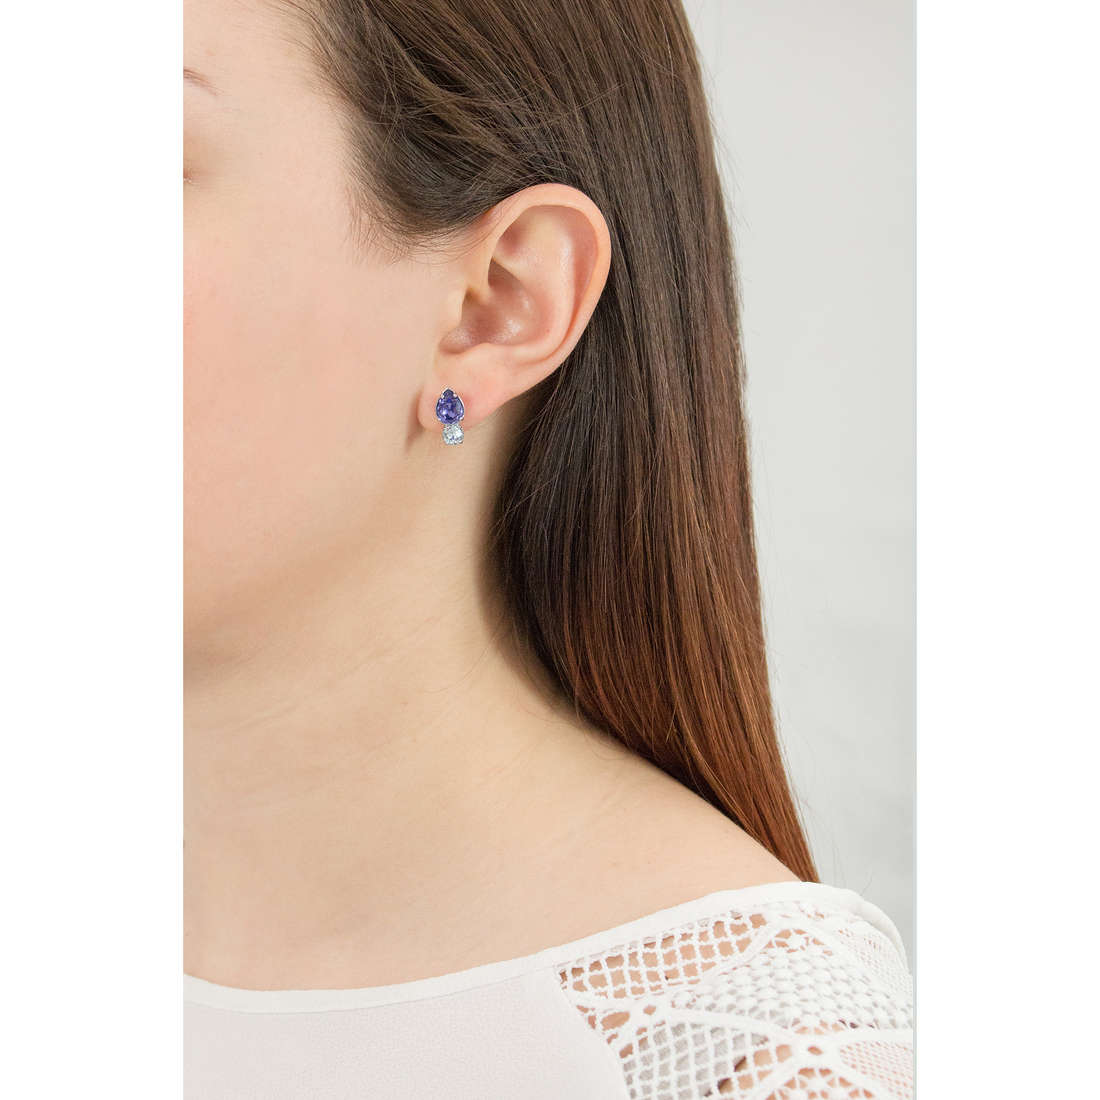 Brosway boucles d'oreille Affinity femme BFF27 photo wearing